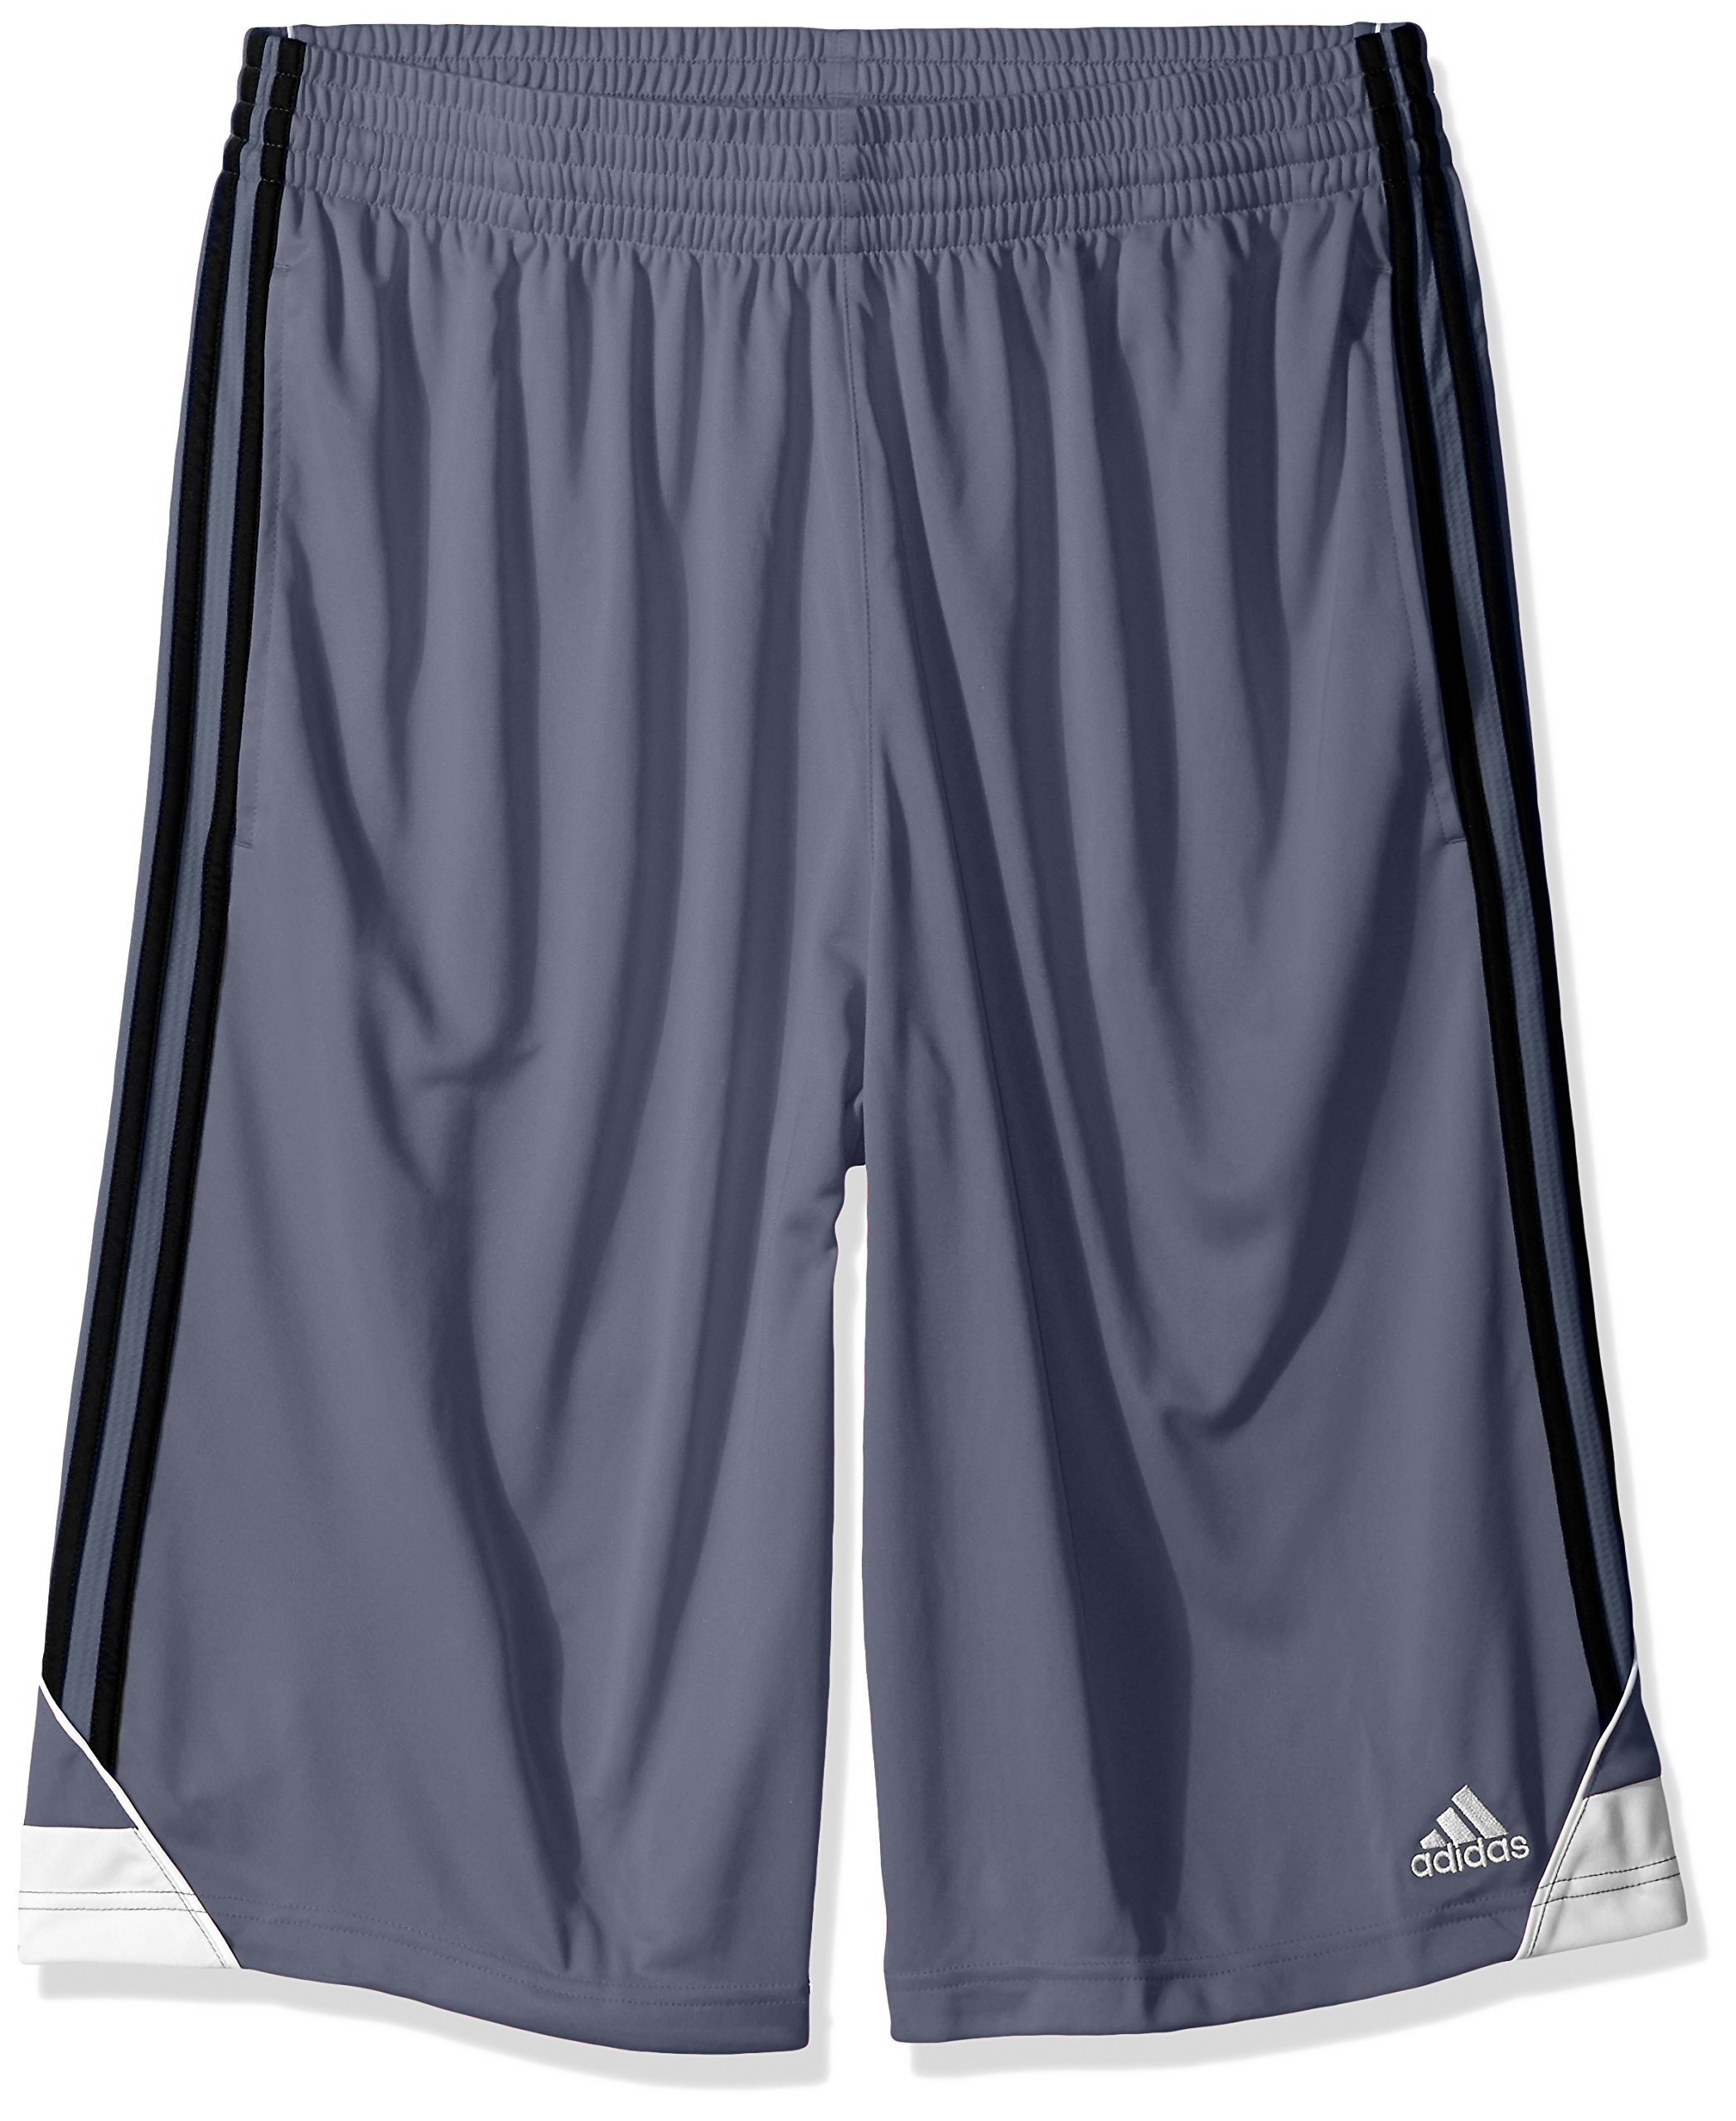 adidas Basketball Accelerate 3 S Stripes 3 DM6990 001 S P 13777 <Active 7f60457 - colja.host